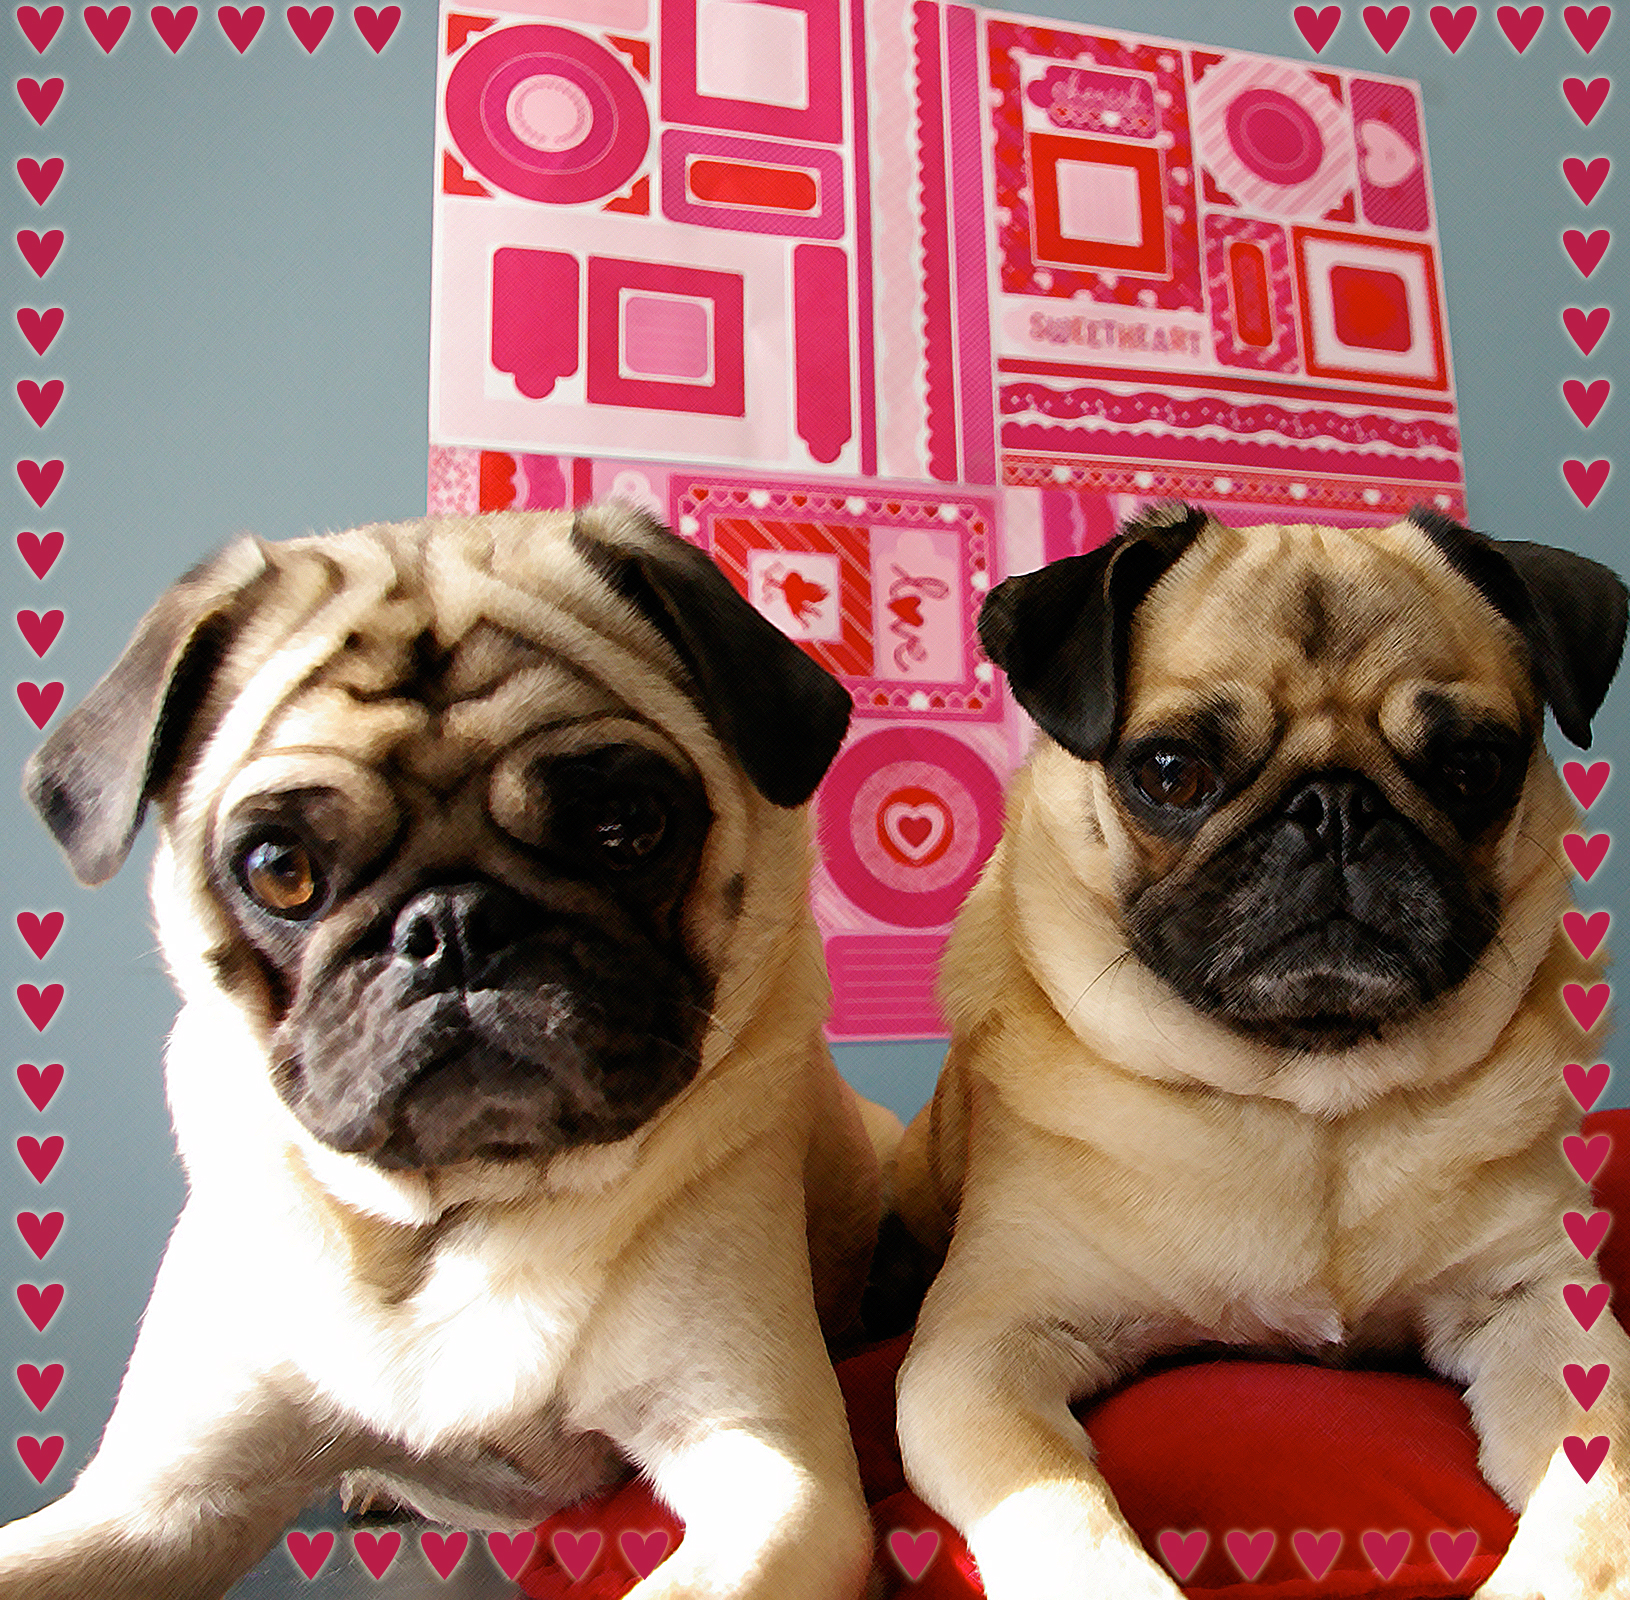 Two cute Valentine Pug dogs wallpaper